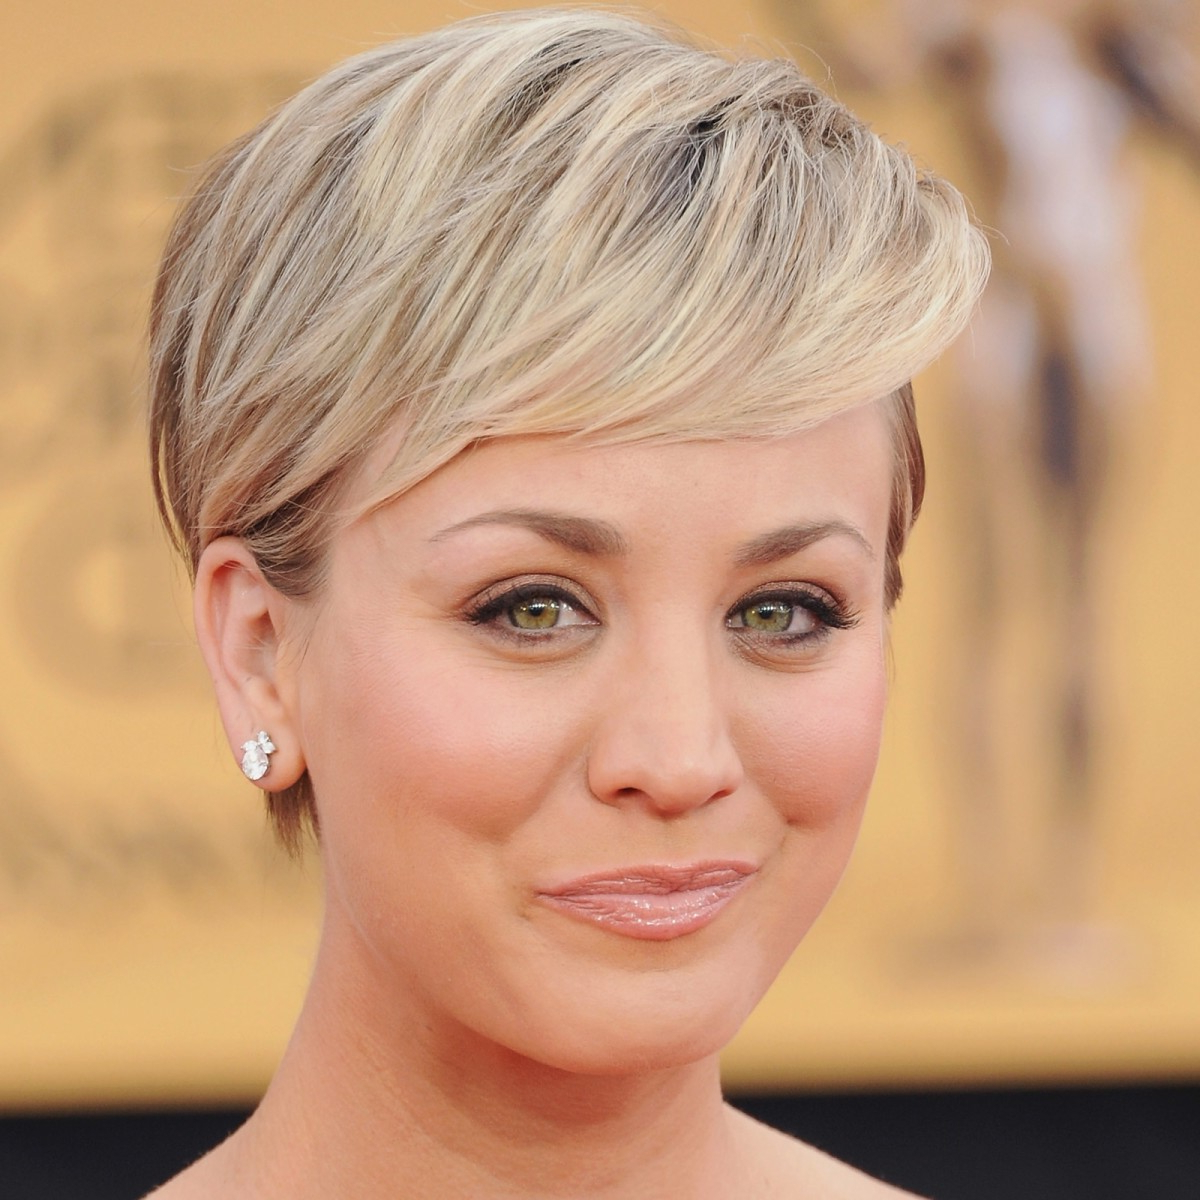 Kaley Cuoco Biography – Biography Regarding Kaley Cuoco Short Hairstyles (View 22 of 25)